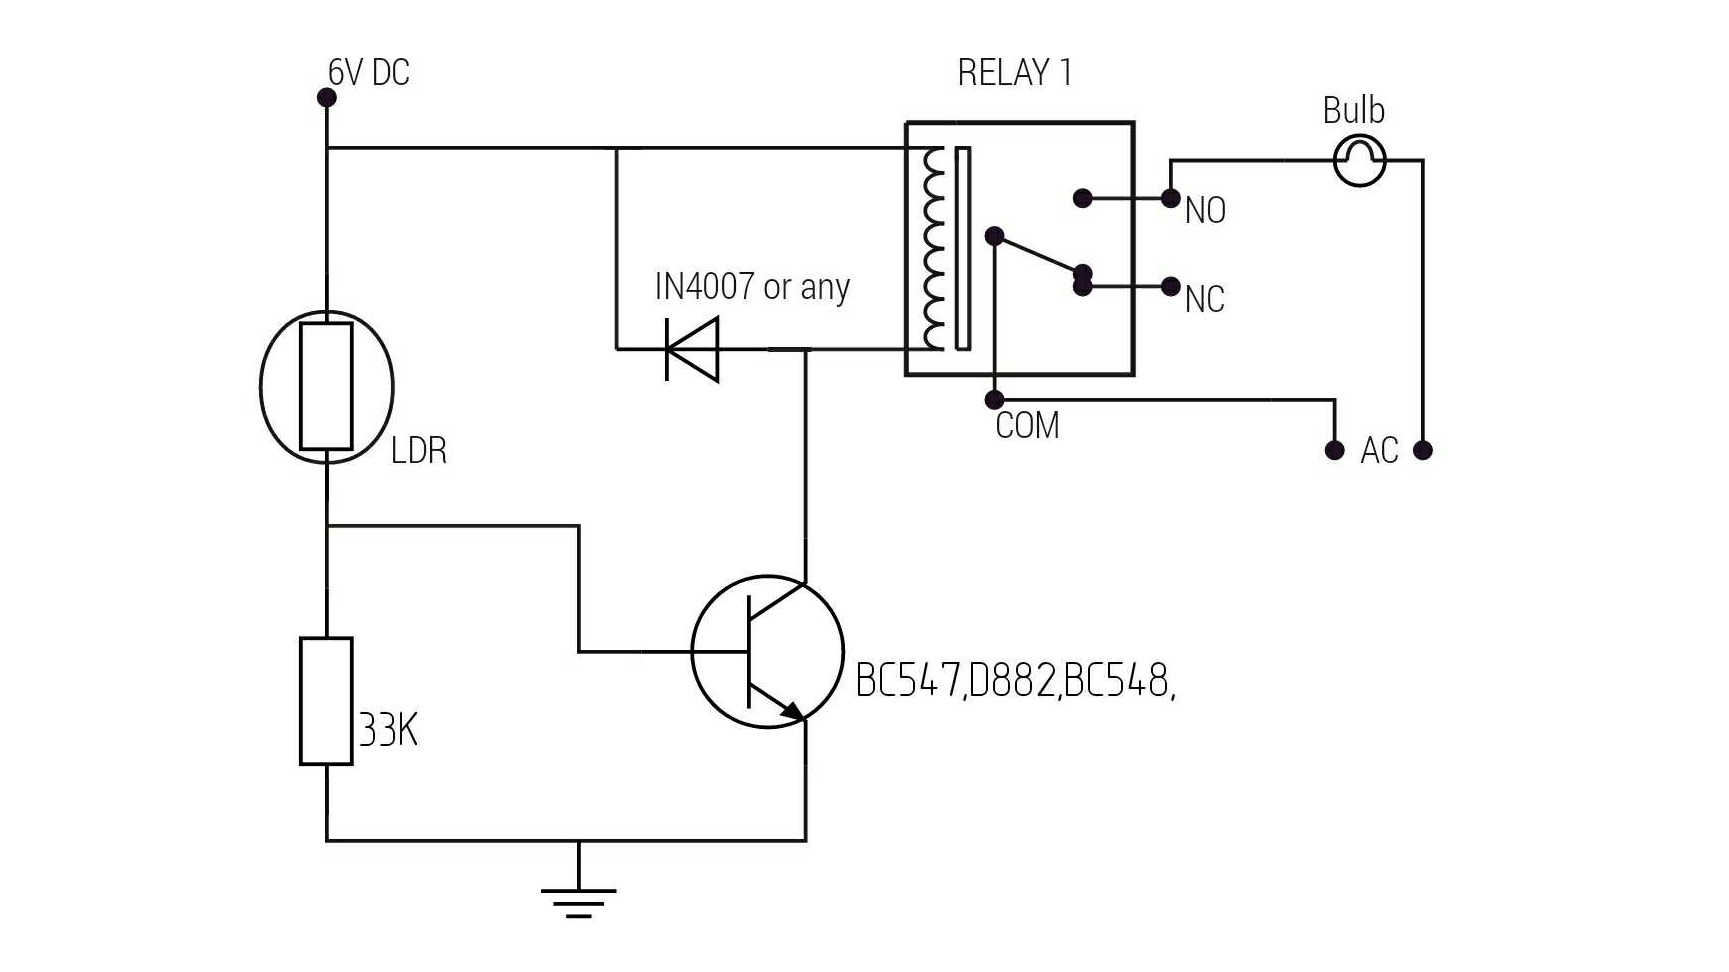 Automatic light with ldr circuit diagram.